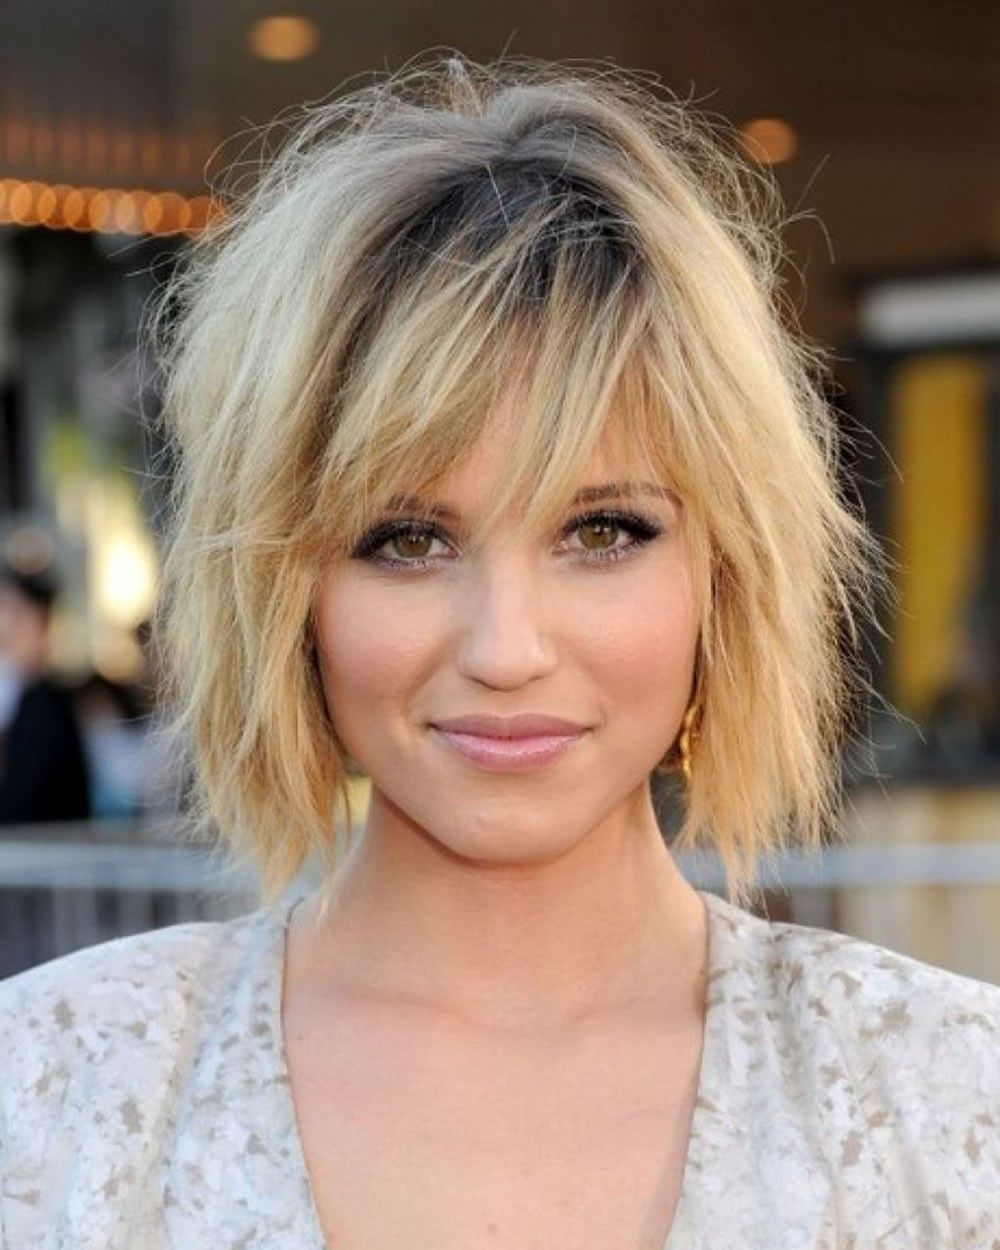 Choppy Haircuts For Square Face: How To Style A Layered Bob With Bangs